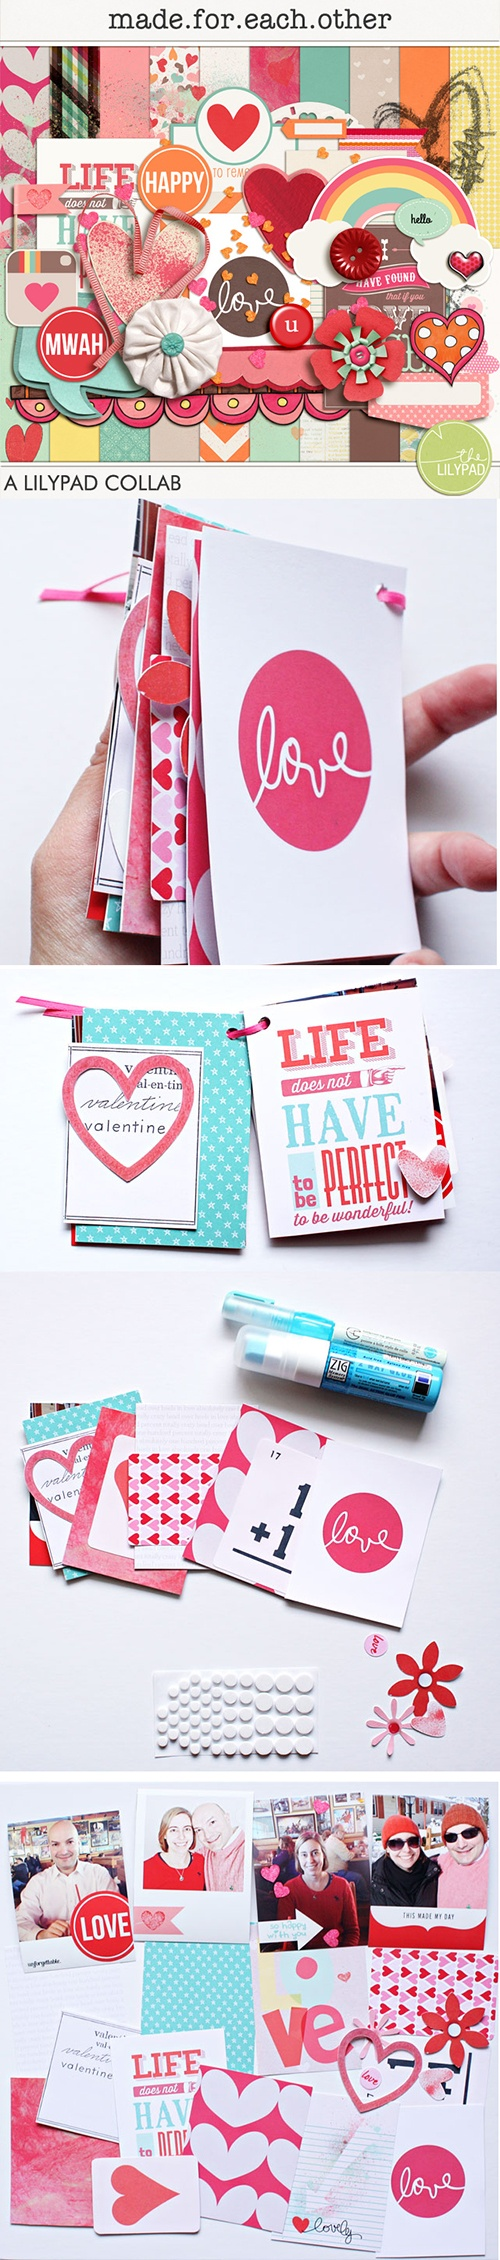 'Made For Each Other' - Free kit + Hybrid Tutorial from The Lilypad #ProjectLife #Scrapbooking #Printables